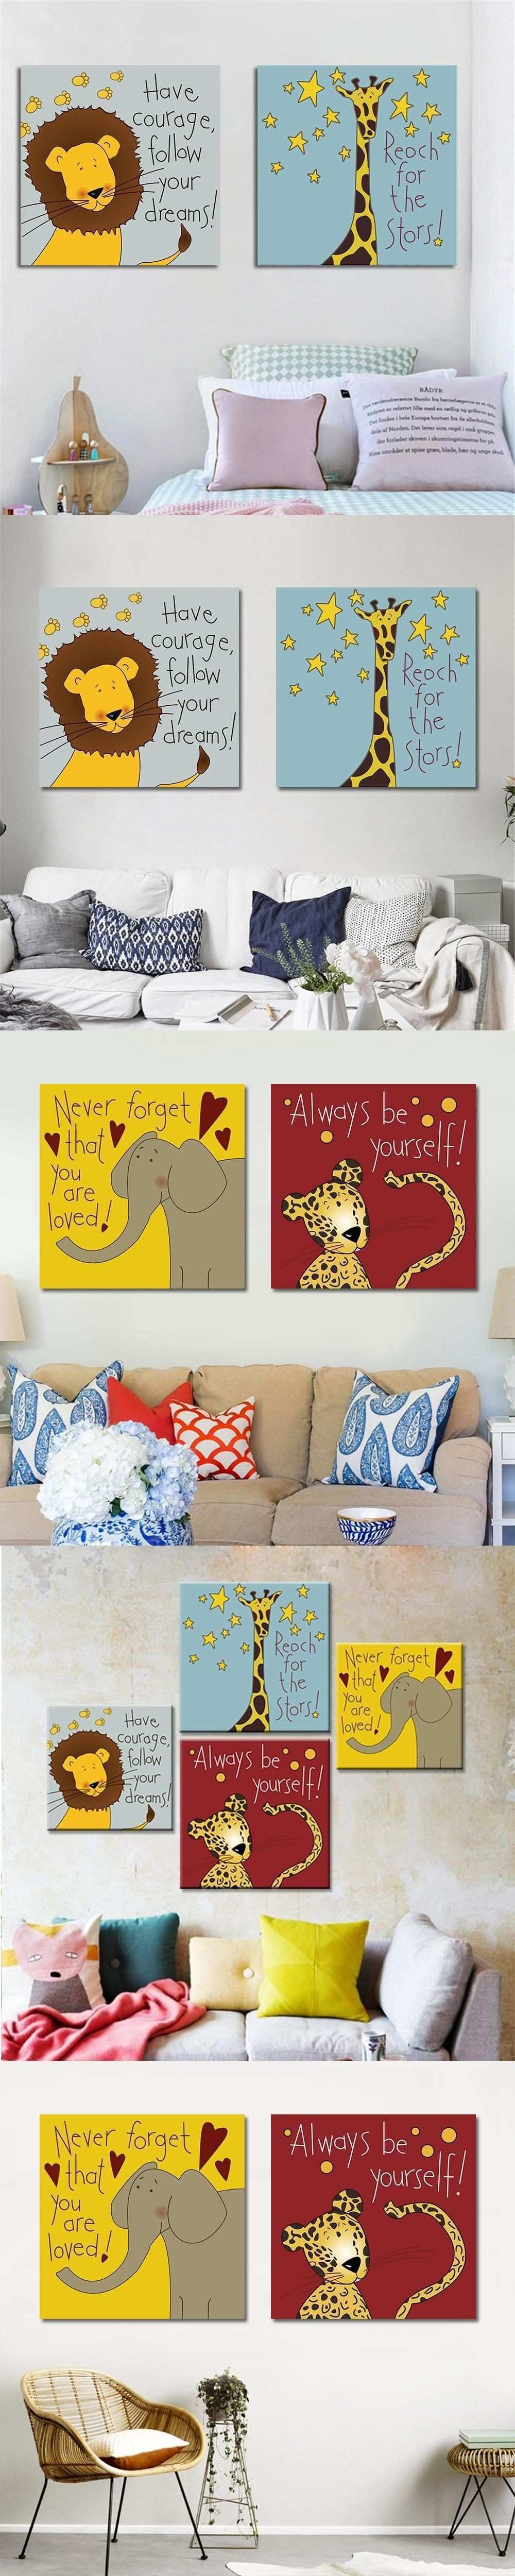 Awesome Your Wall Decorations Design Ideas E4r